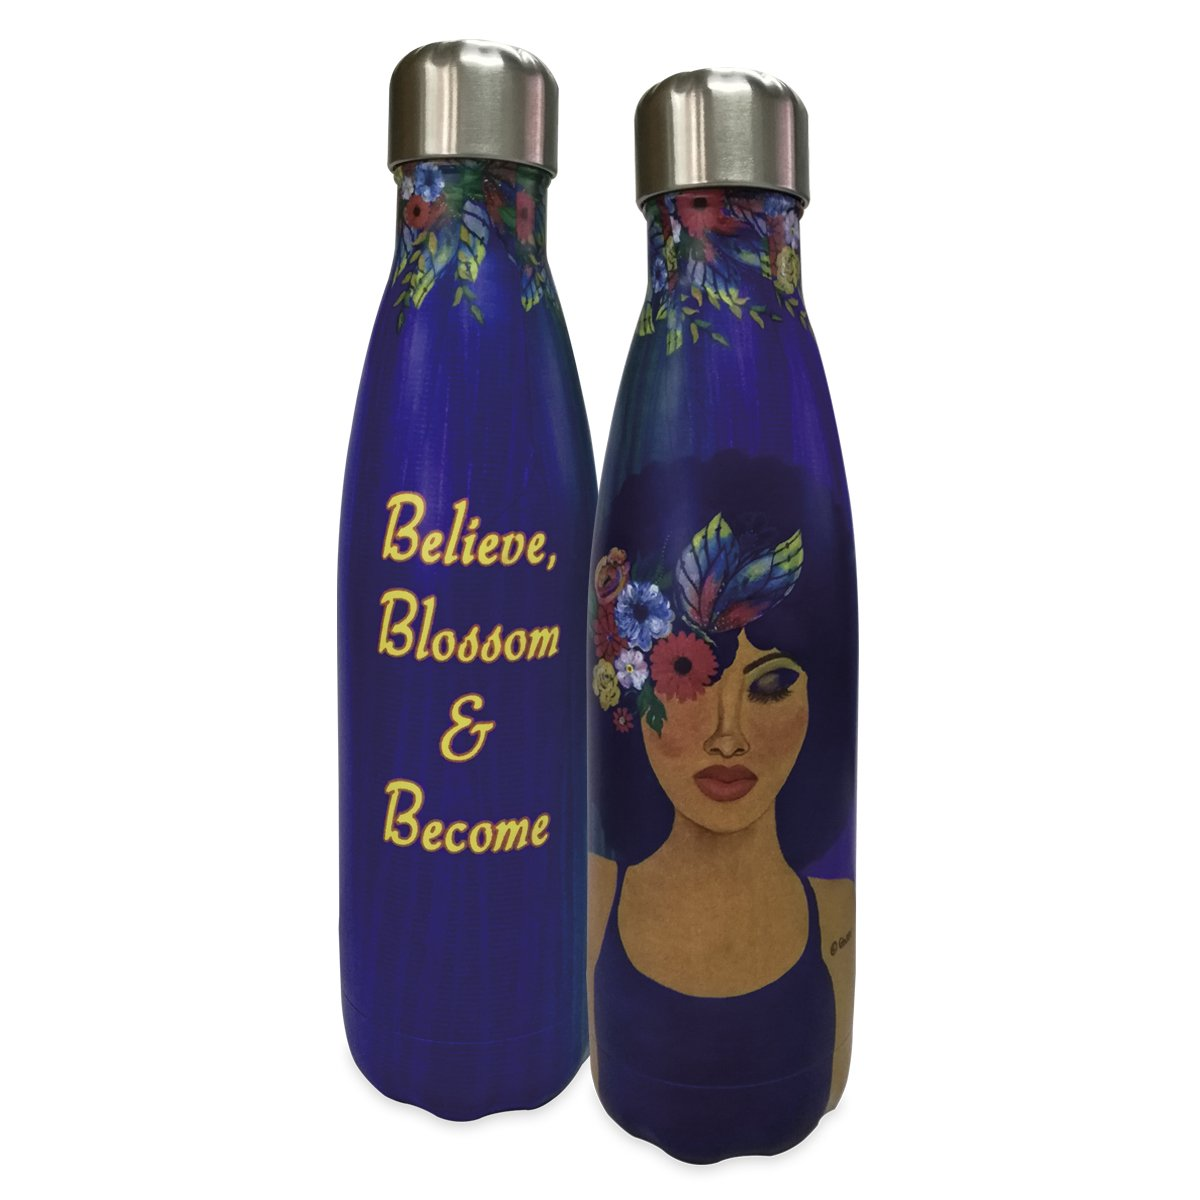 Believe, Blossom and Become: African American Stainless Steel Bottle by GBaby